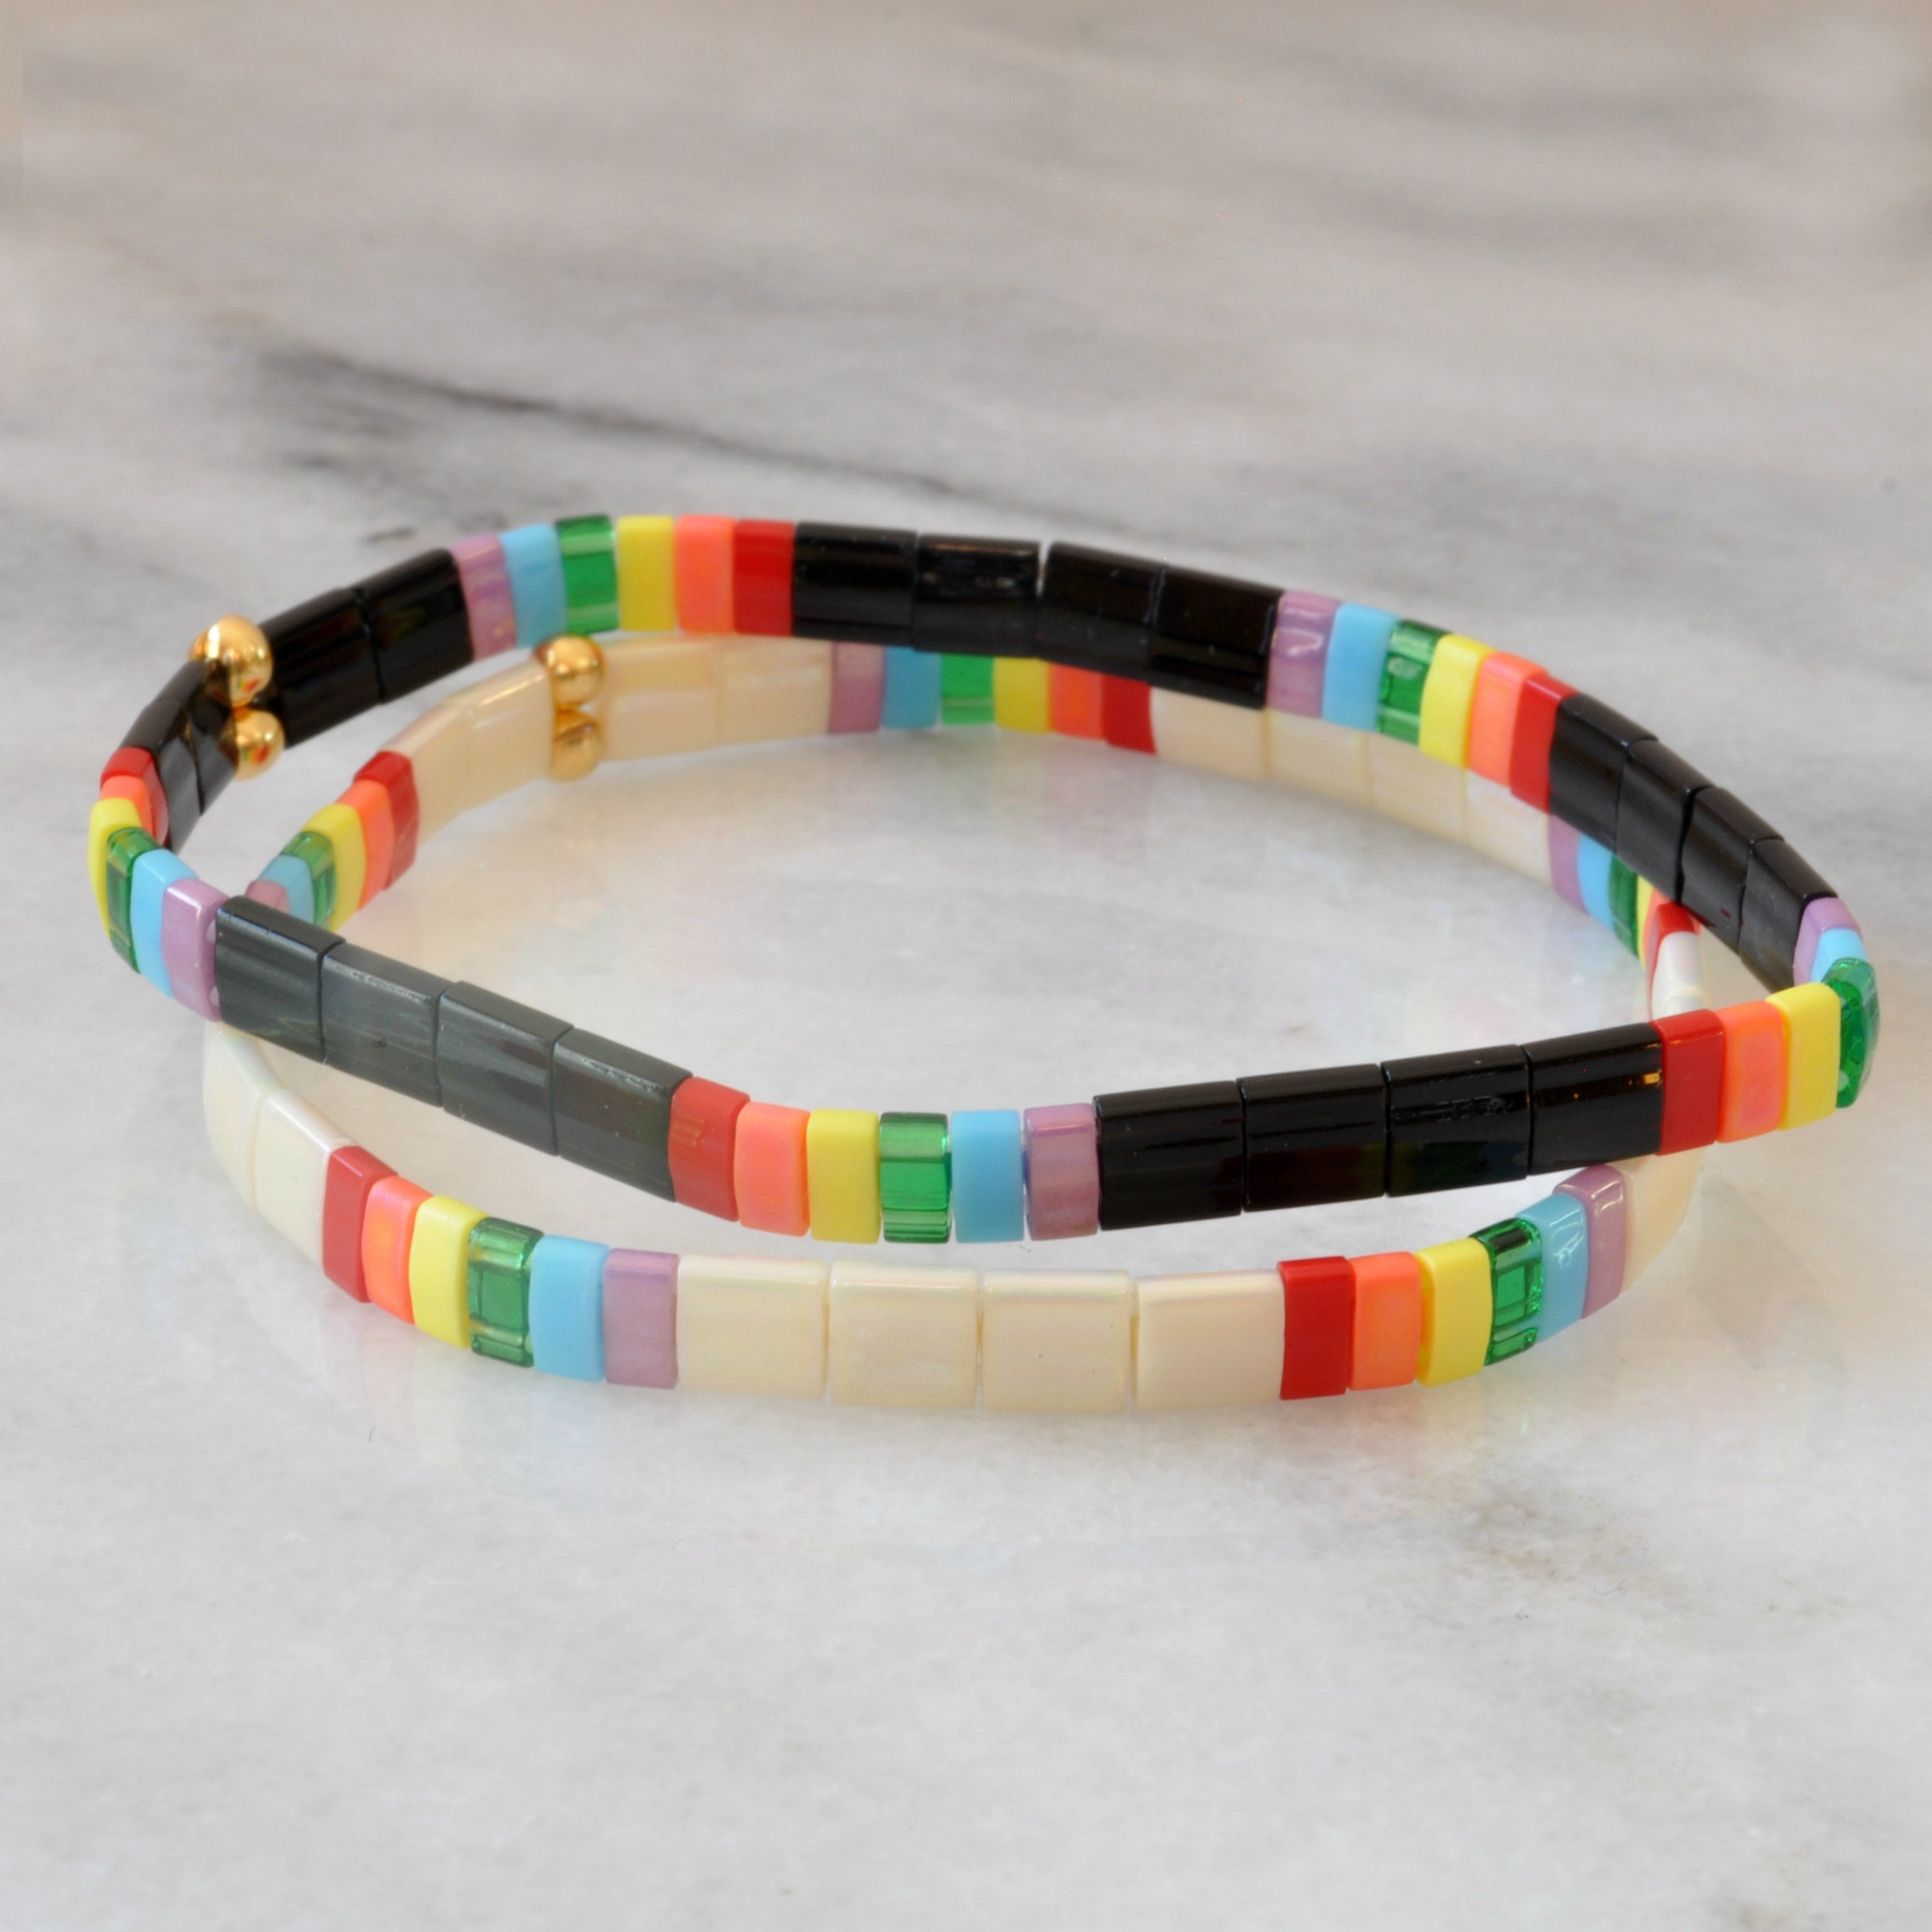 Libby & Smee Rainbow Stretch Bracelet in Ivory tile beads and in Black, still life